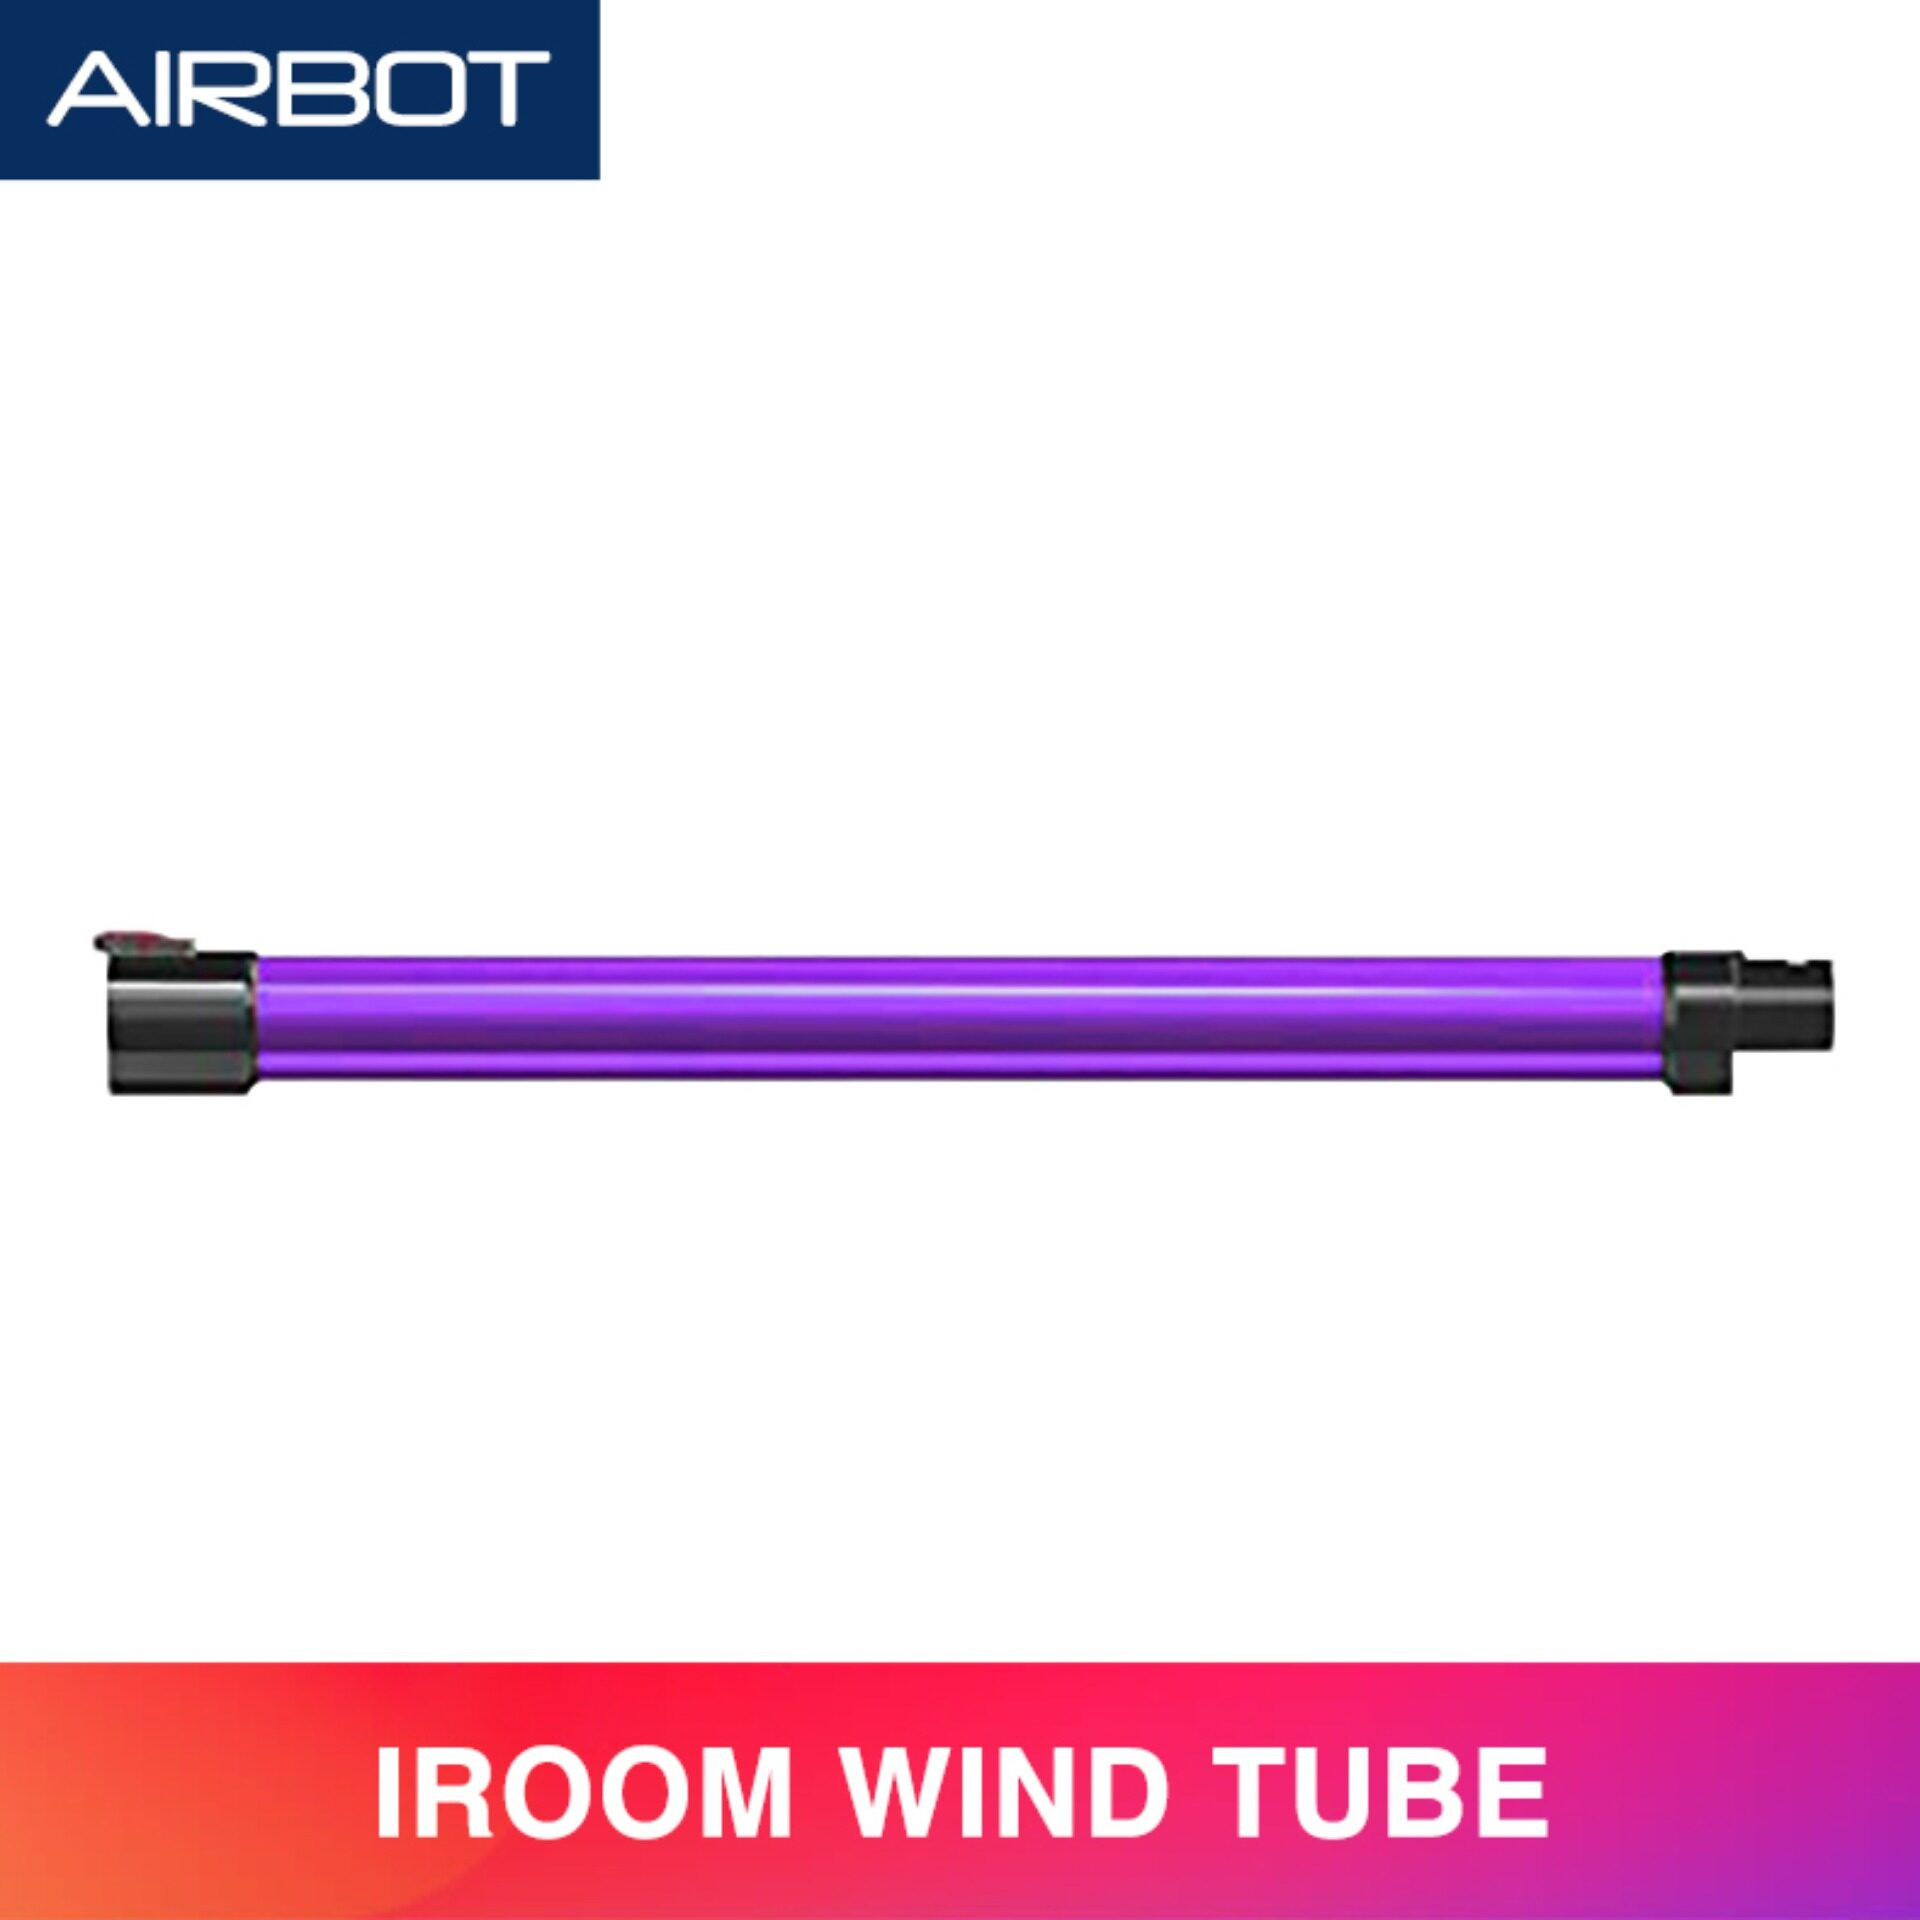 Airbot iRoom Spare Parts Replacement Wind Tube